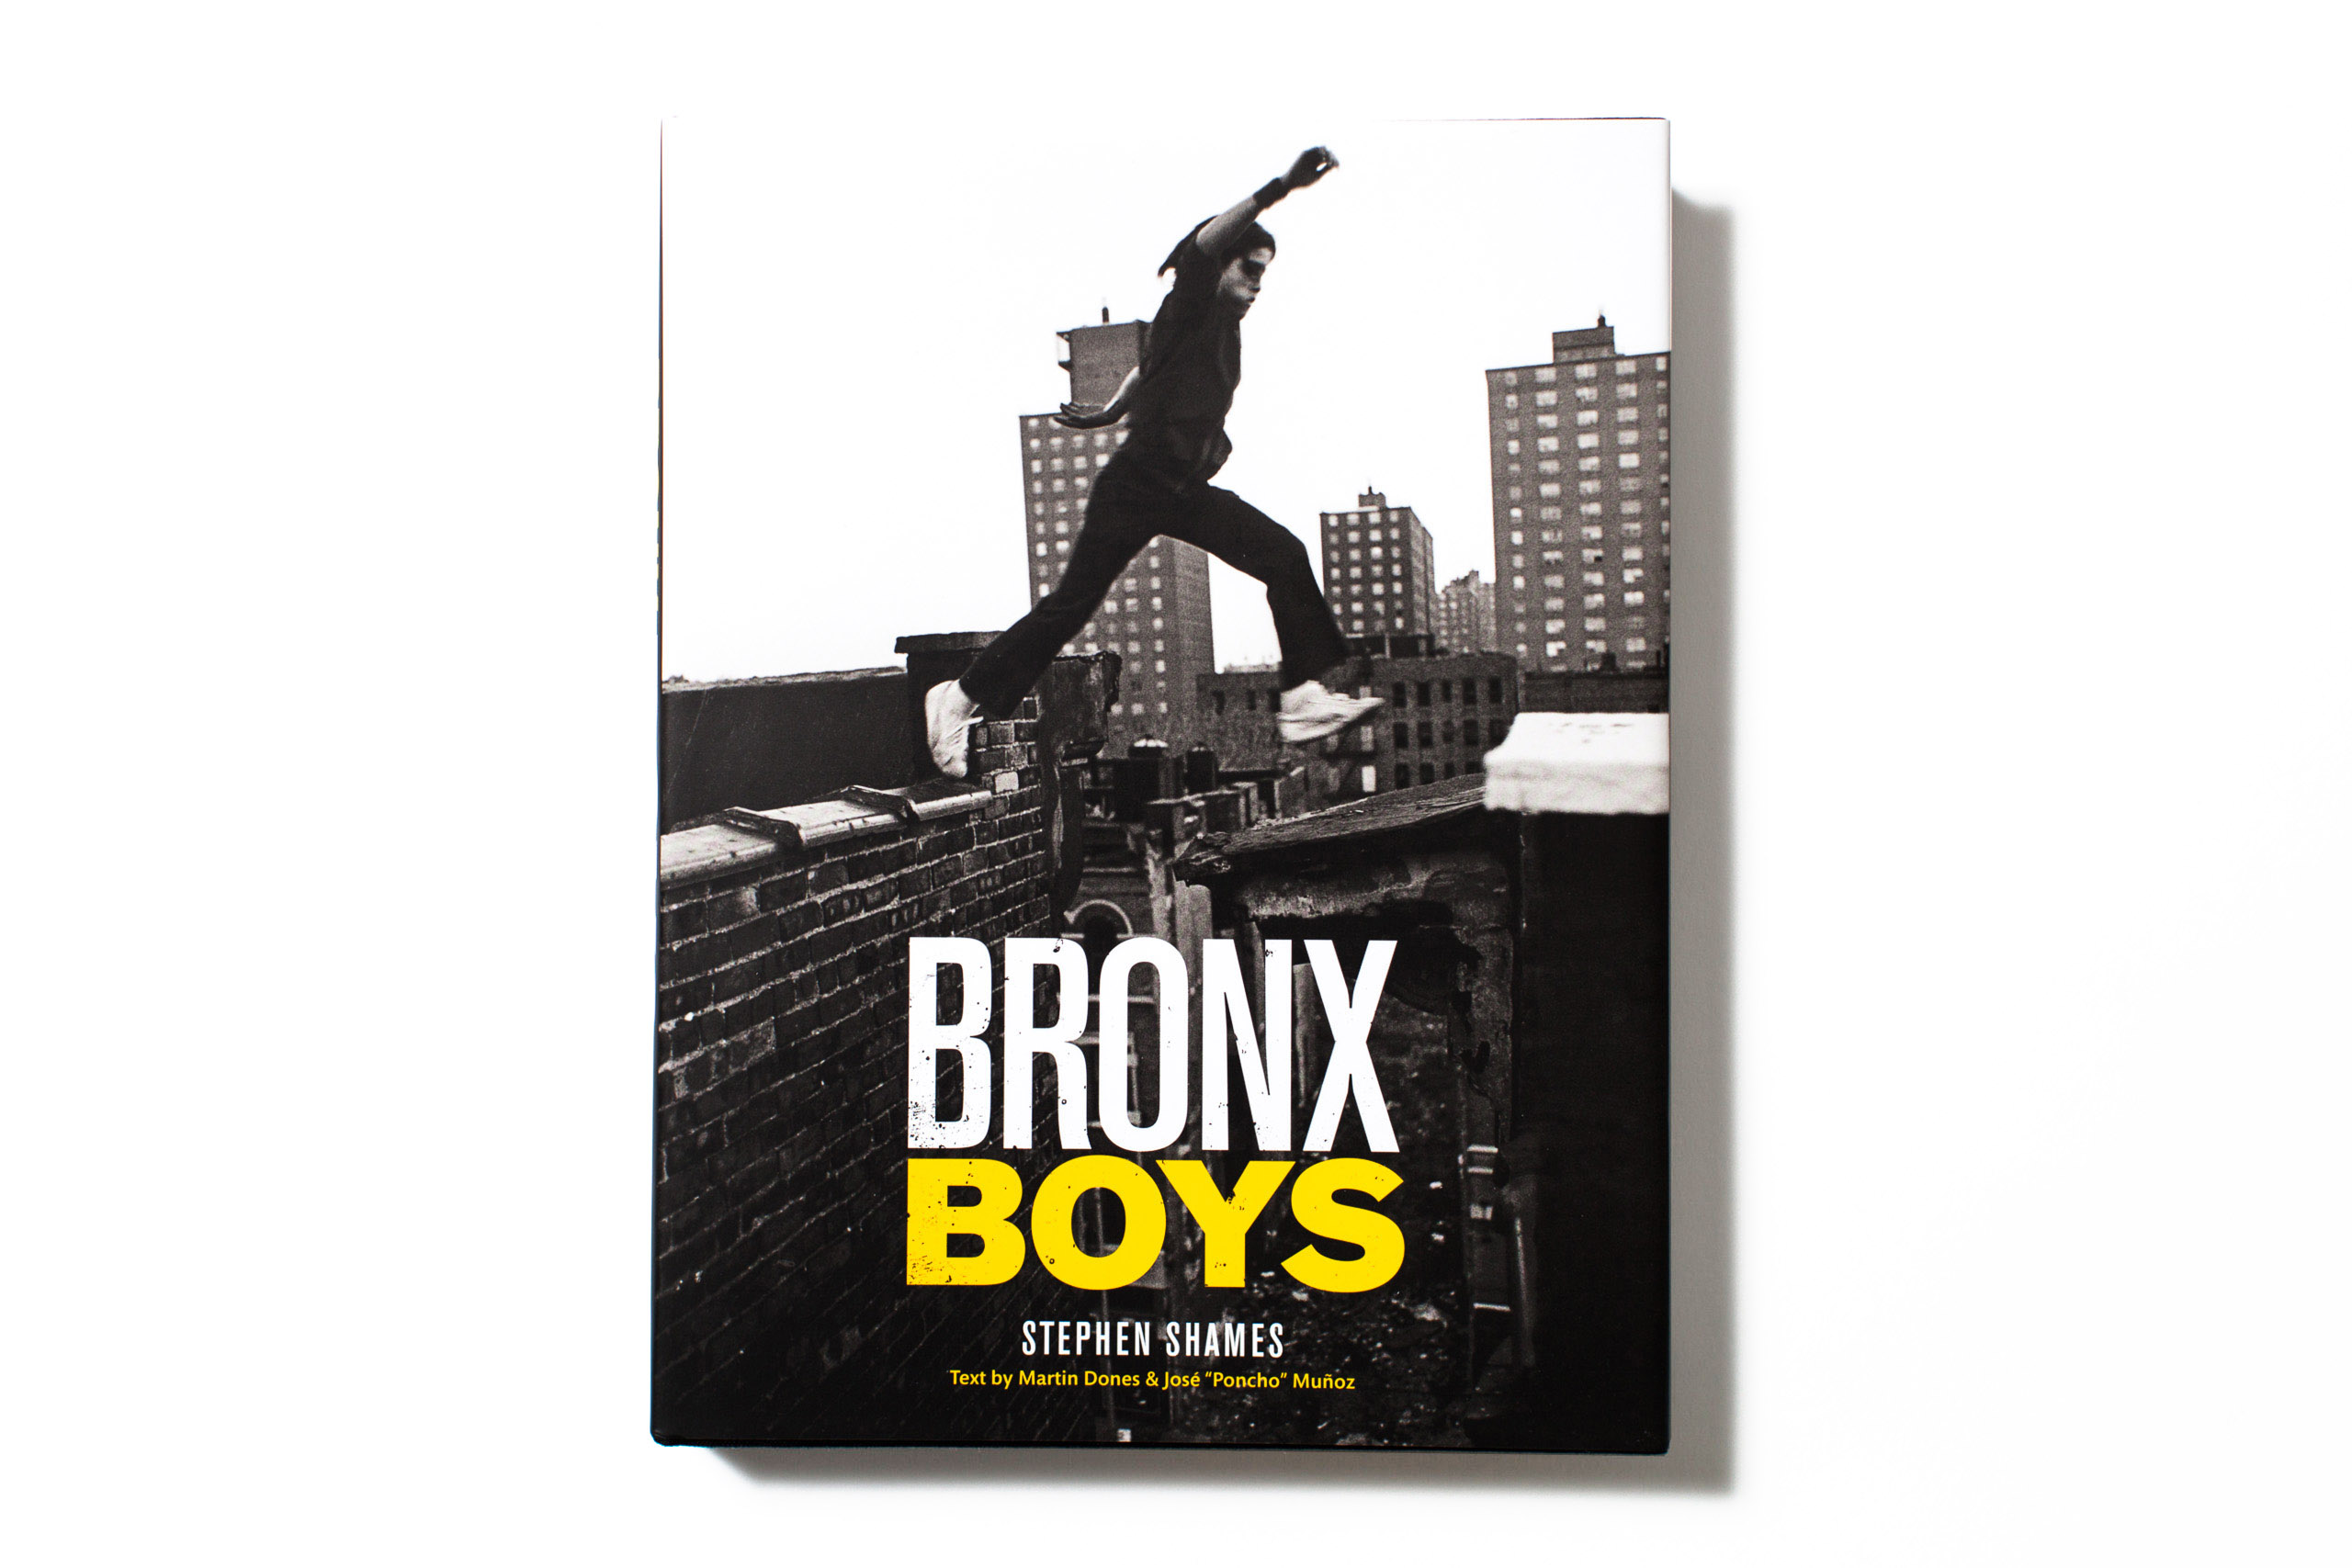 """<a href=""""http://www.amazon.com/Bronx-Boys-Stephen-Shames/dp/0292759428""""><i><b>                                   Bronx Boys                                   </i></b></a> by                                   Stephen Shames, published by                                   University of Texas Press, selected by                                    Vince Aletti, photography critic, The <i>New Yorker</i>."""